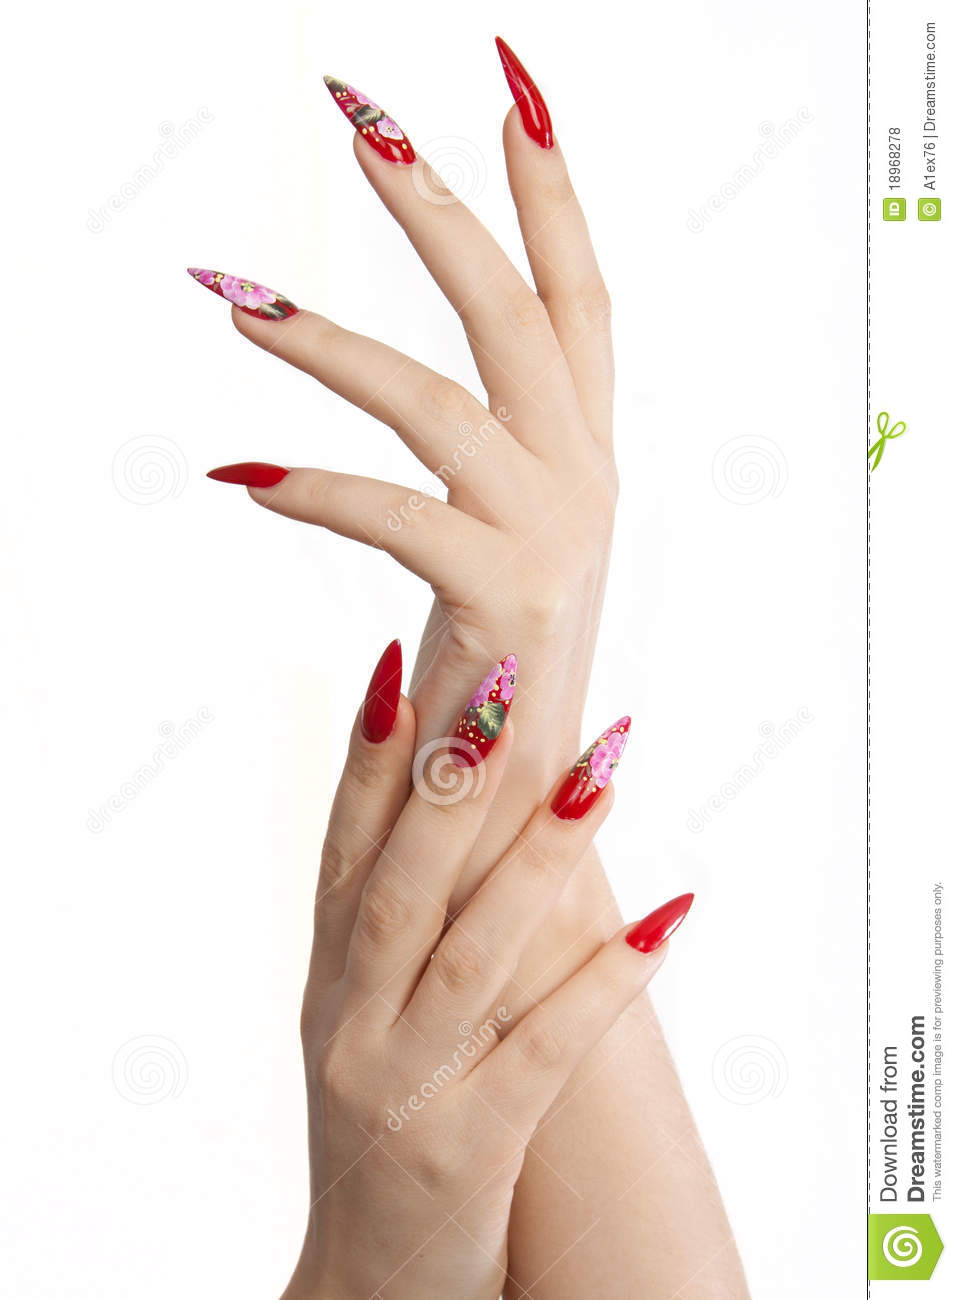 Red long nails stock photo. Image of female, background - 18968278